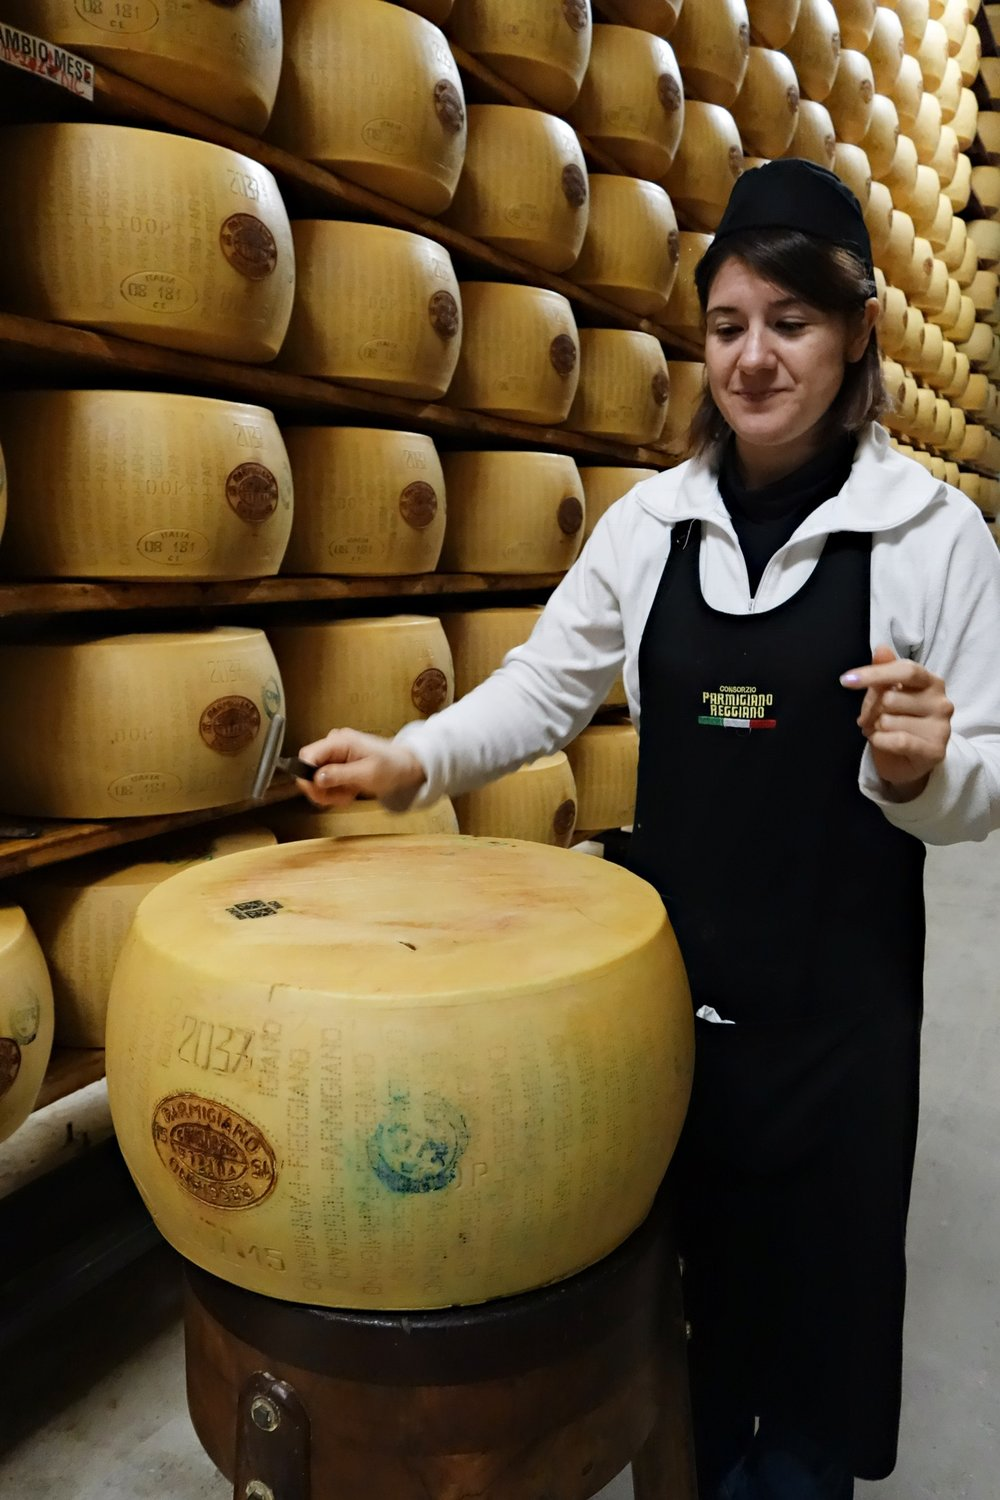 Every twelve months, the inspectors of the Consortium examine each cheese one by one. These tests are done by tapping the cheese in order to hear the sound it makes, similar to what a stethoscope does. If a cheese passes inspection to meet the requirements of the PDO, a mark is fire-branded onto the individual cheeses.   The cheese will not be DOP approved if it sounds like it has large air pockets or bubbles, in which case it cannot be called Parmigiano Reggiano; all identifying marks and dotted inscriptions are removed from the cheese.